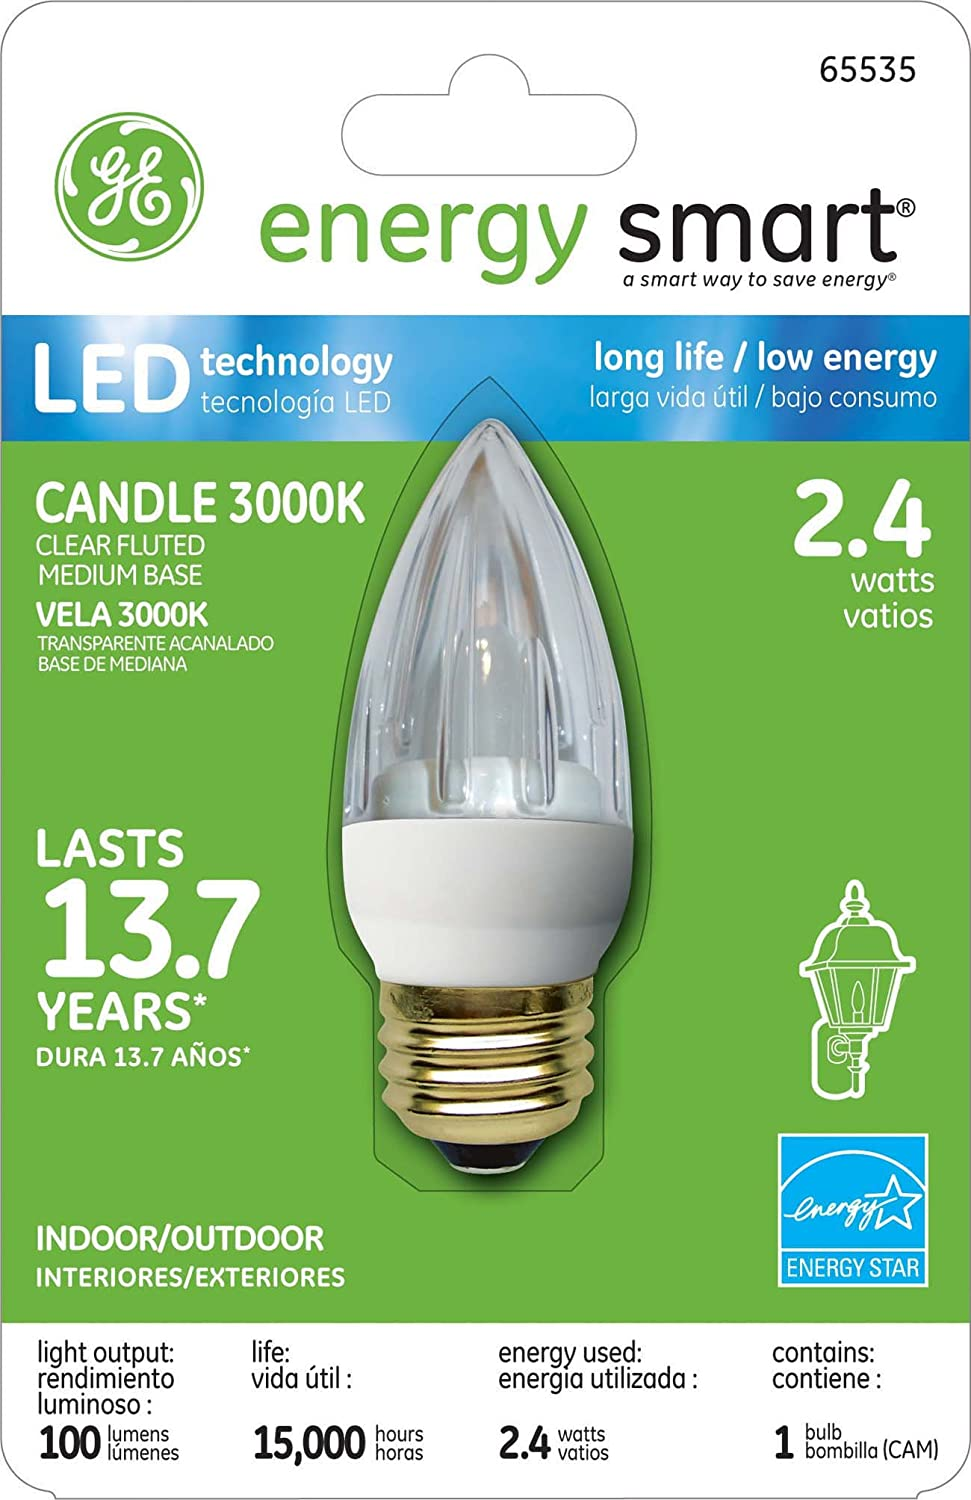 GE Lighting 65535 Energy Smart LED 2.4-Watt (15-watt replacement) 100-Lumen Fluted Candle Light Bulb with Medium Base, 1-Pack - Led Household Light Bulbs ...